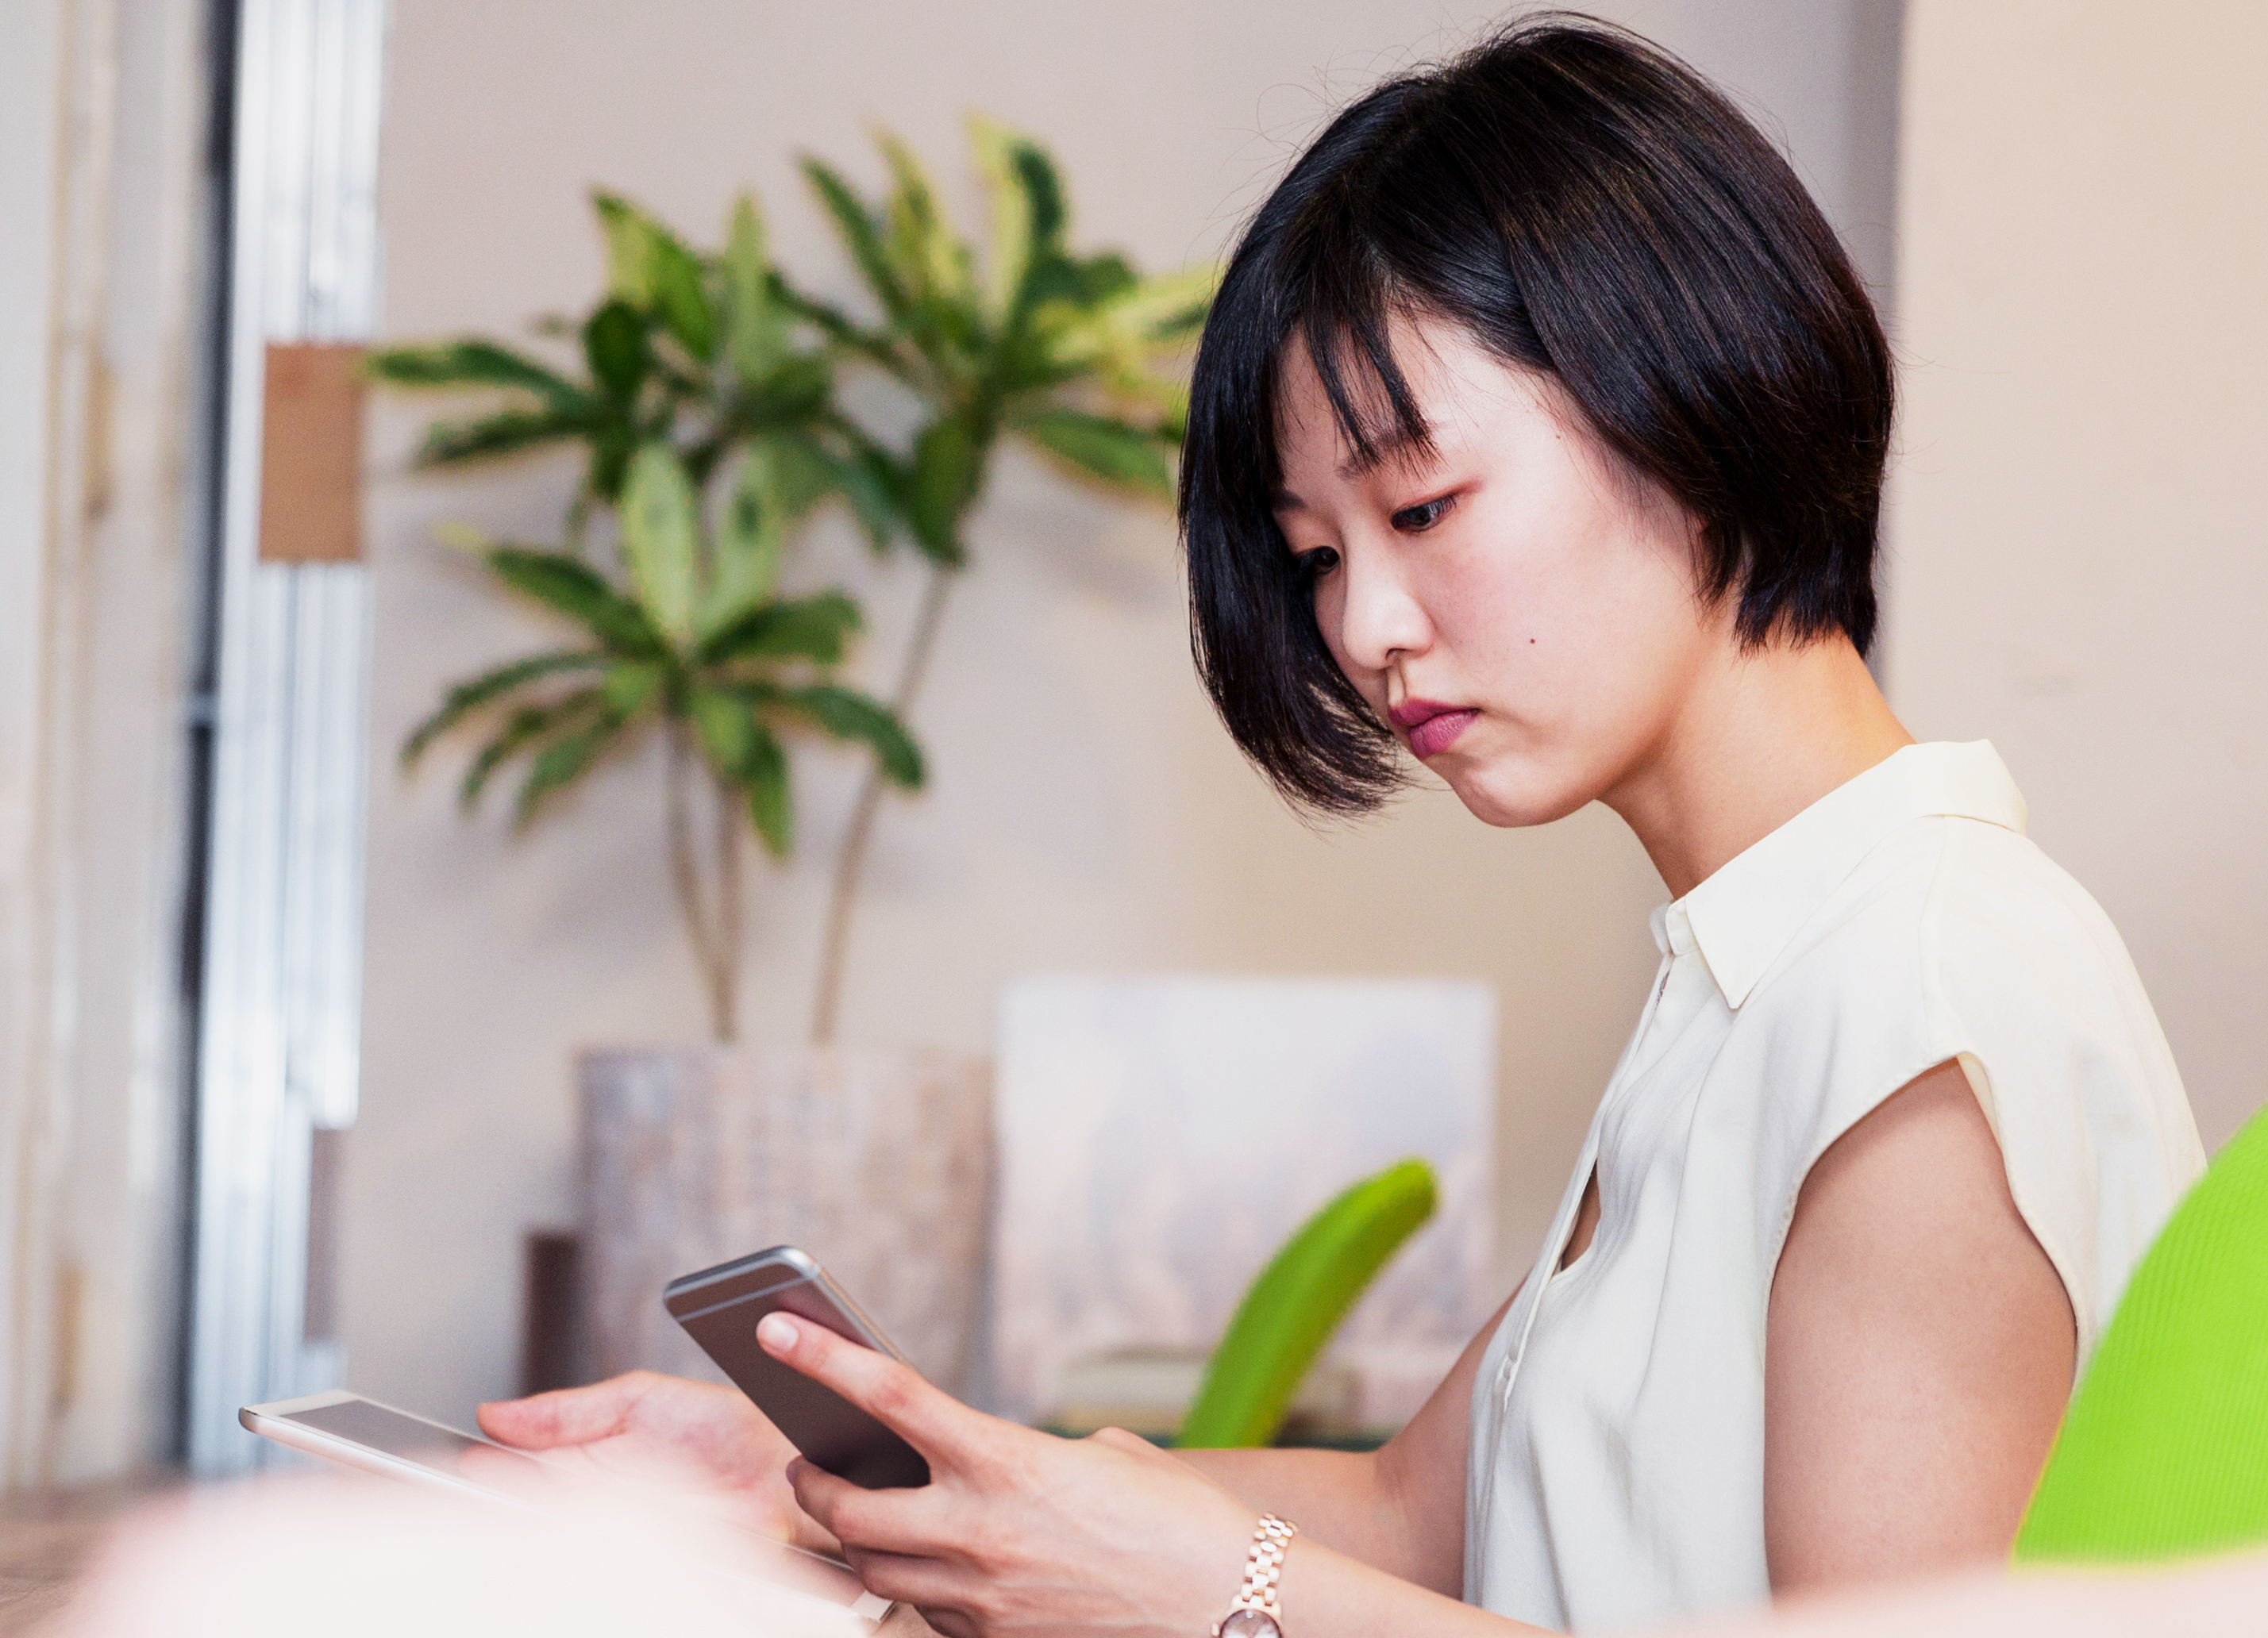 Korean businesswoman using a smartphone while also using a digital tablet